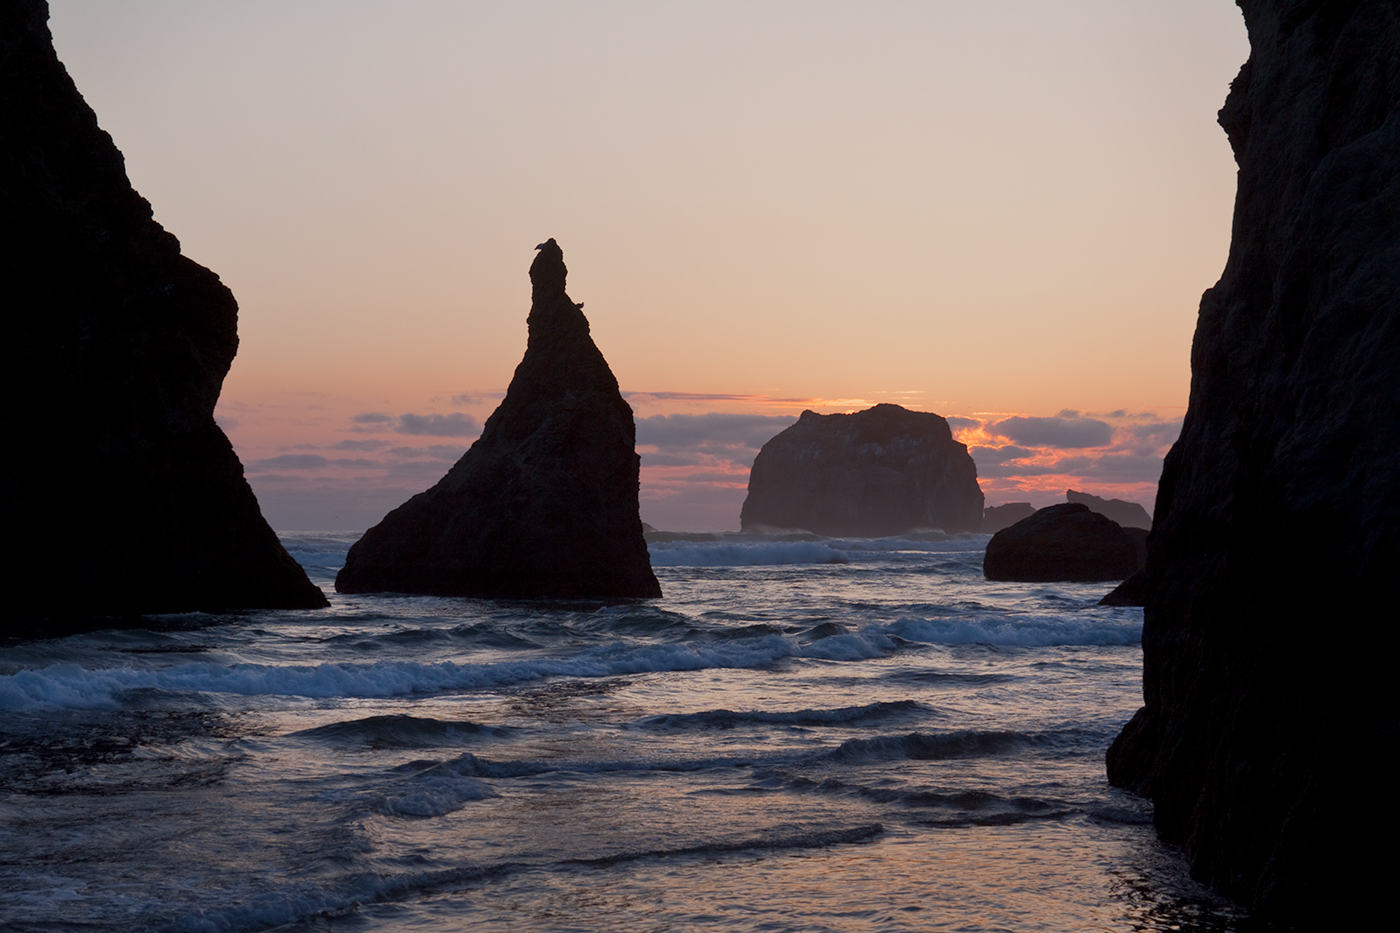 Sea stack bookends